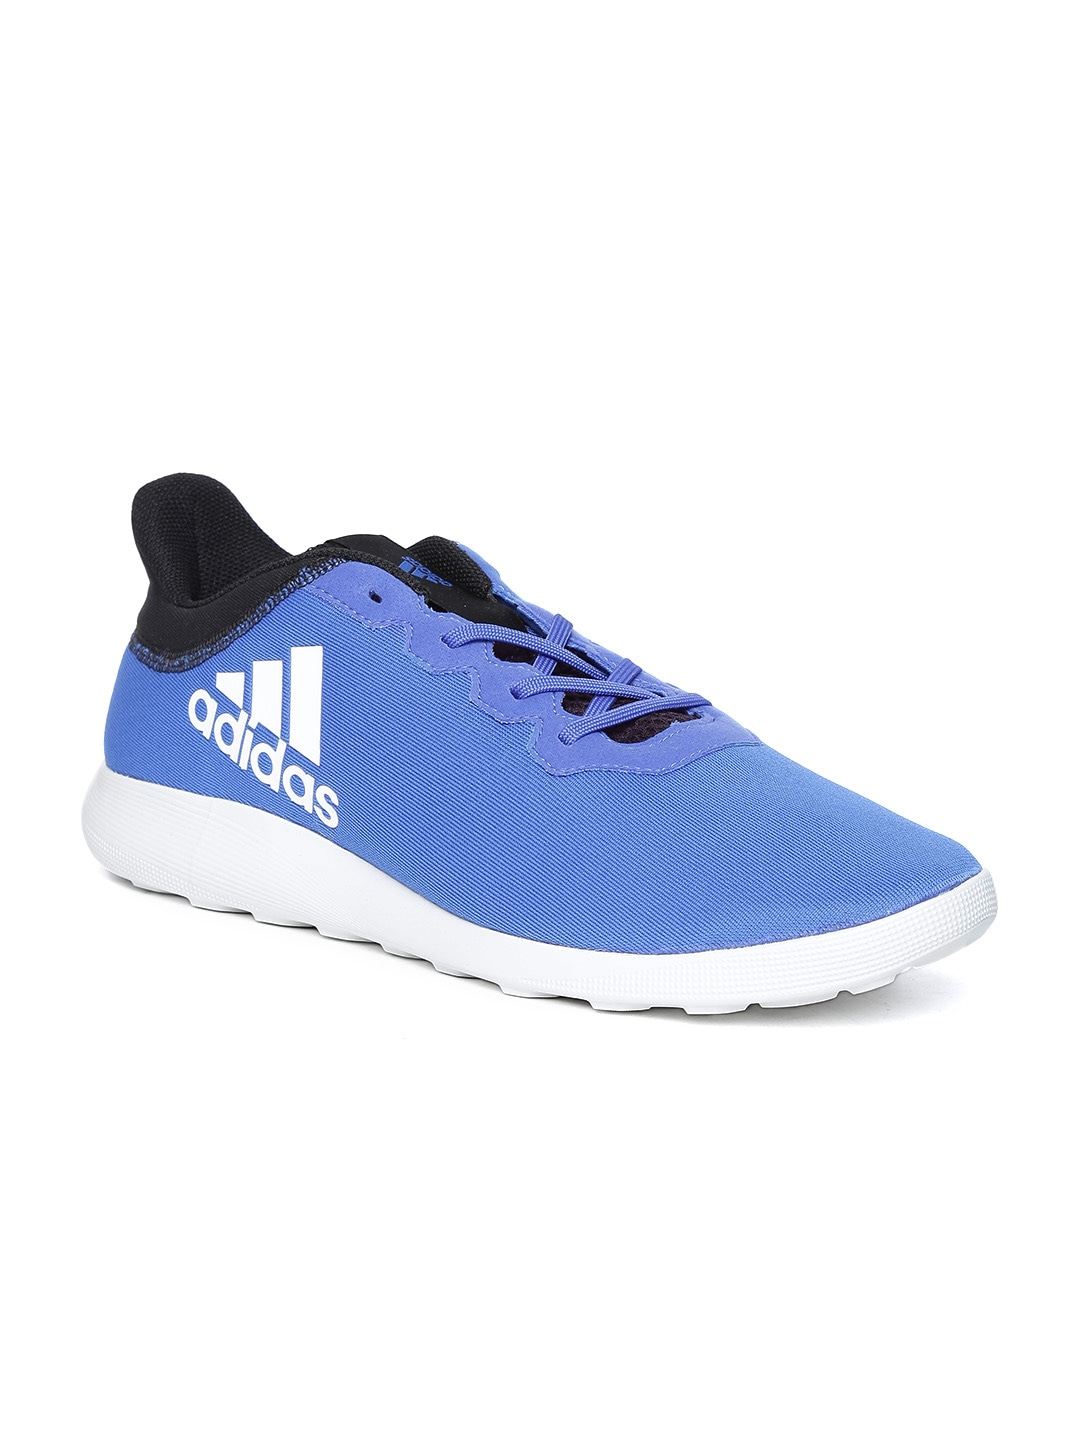 studs shoes for football adidas